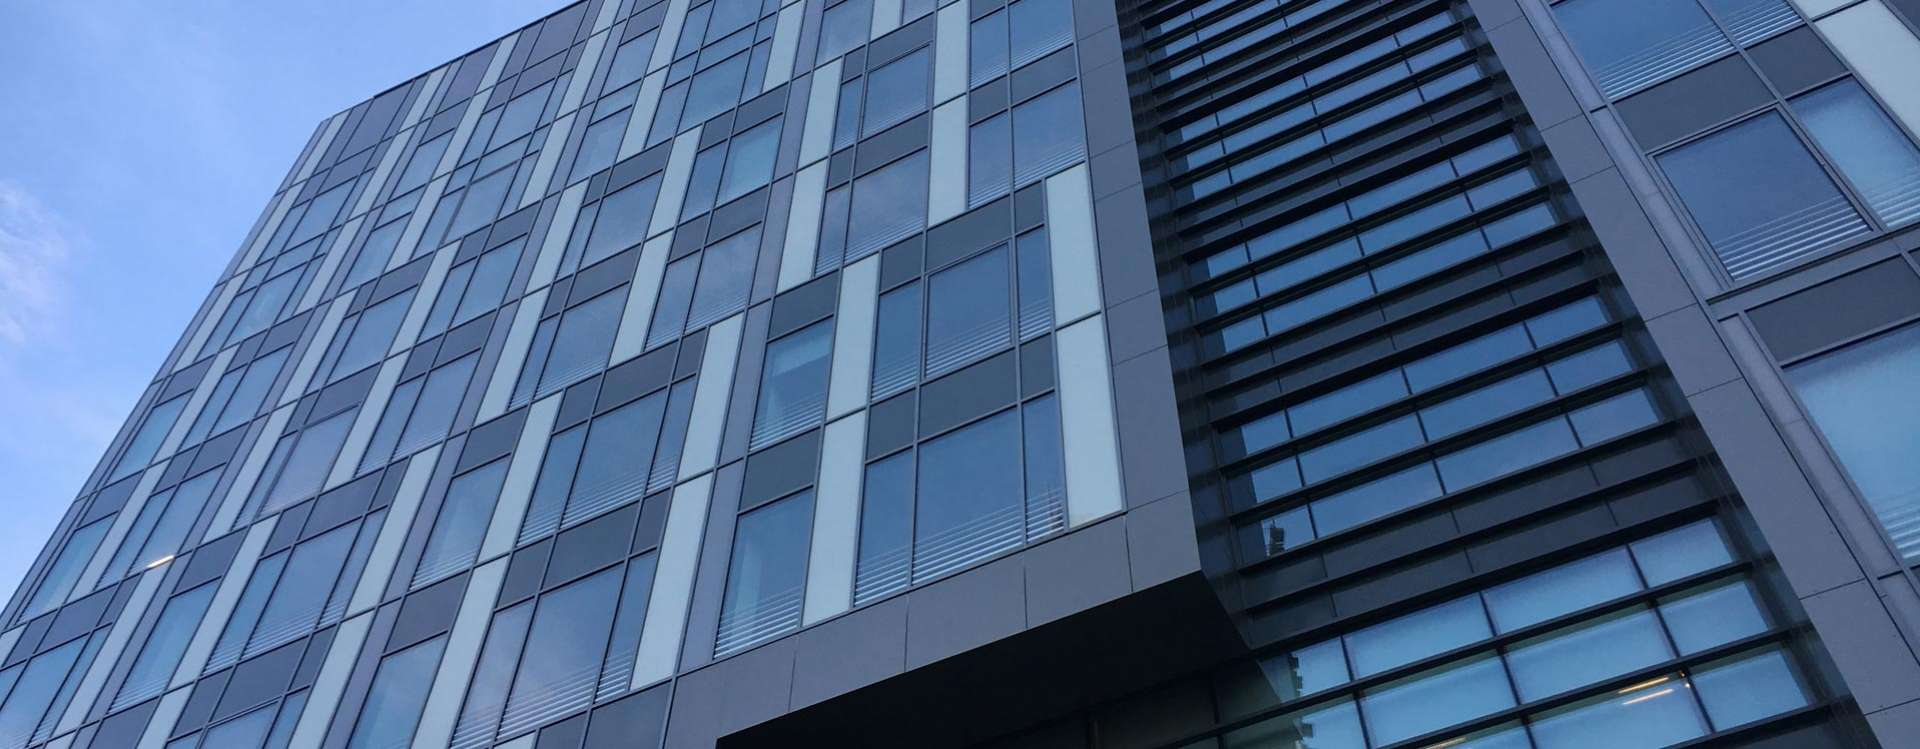 United in Clichy, a 7,000 m² office building on a site subject to multiple restrictions